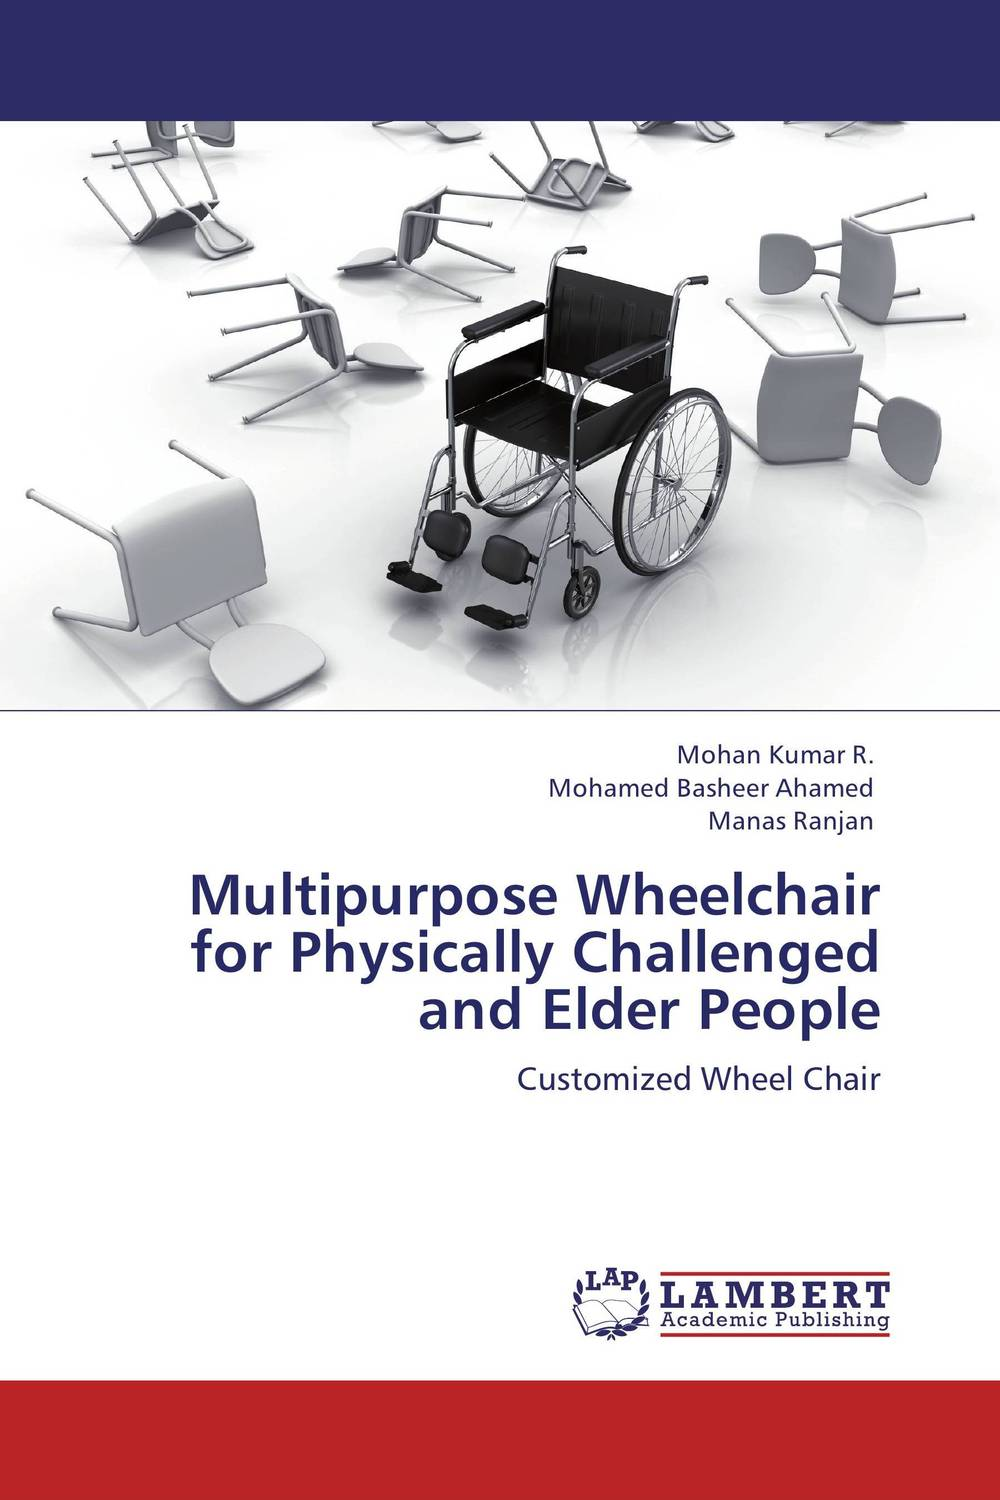 Multipurpose Wheelchair for Physically Challenged and Elder People case history of therapeutic patient manual